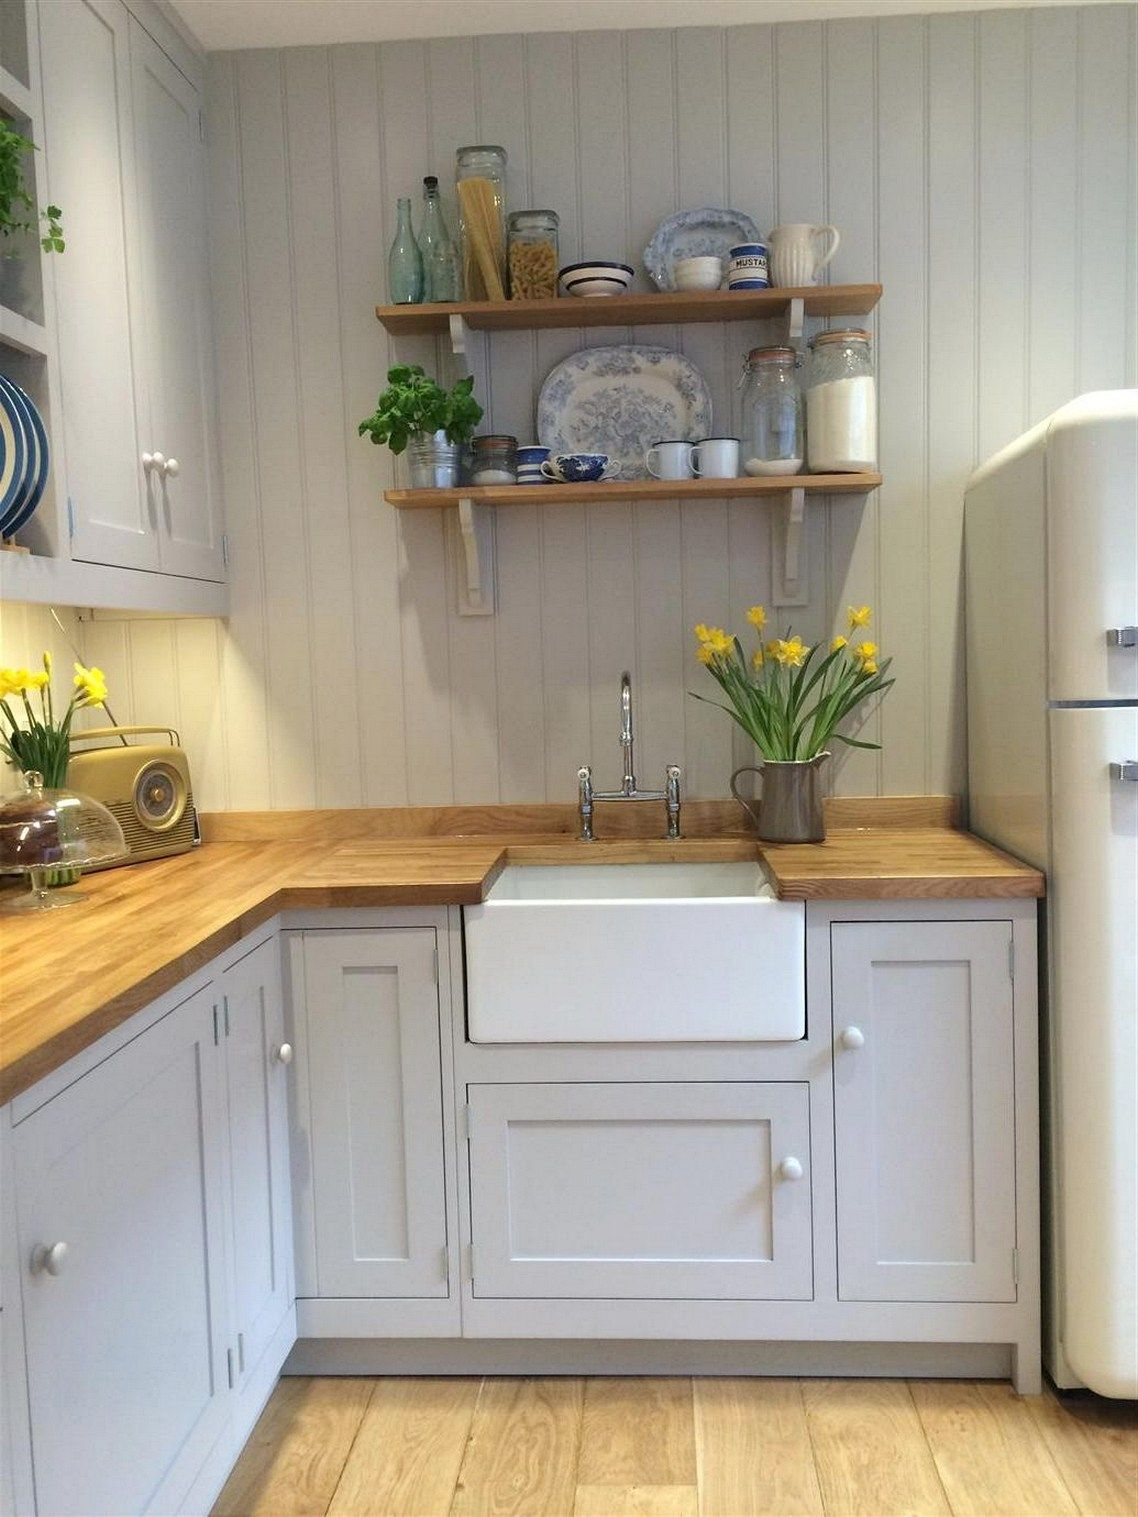 Pin By Indah Ratna On Kitchen In 2019 Small Cottage Kitchen